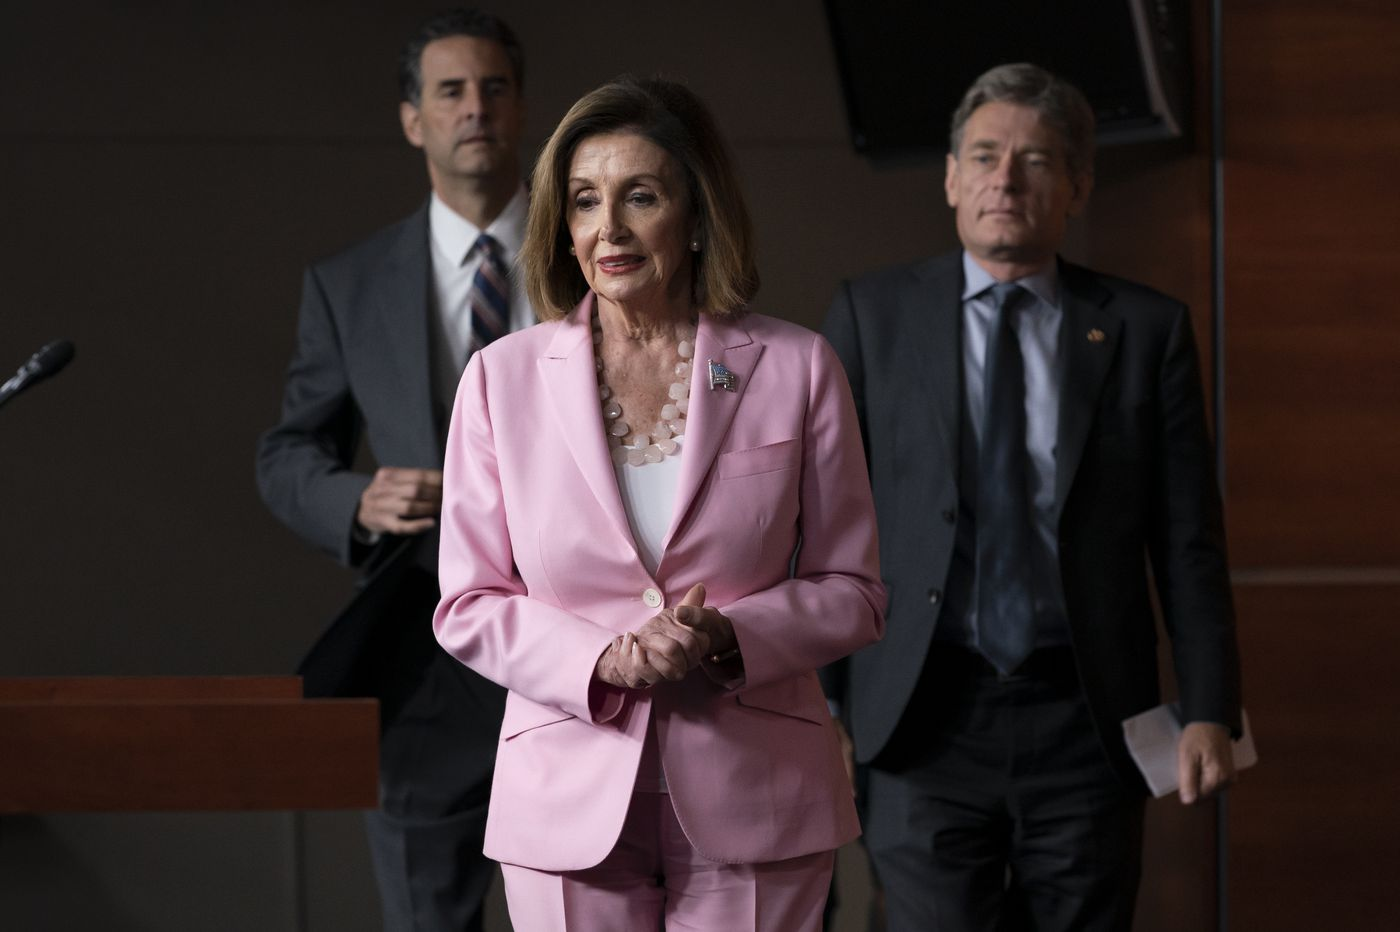 Nancy Pelosi to New Jersey Democrats: Impeachment inquiry of Trump is an 'obligation'